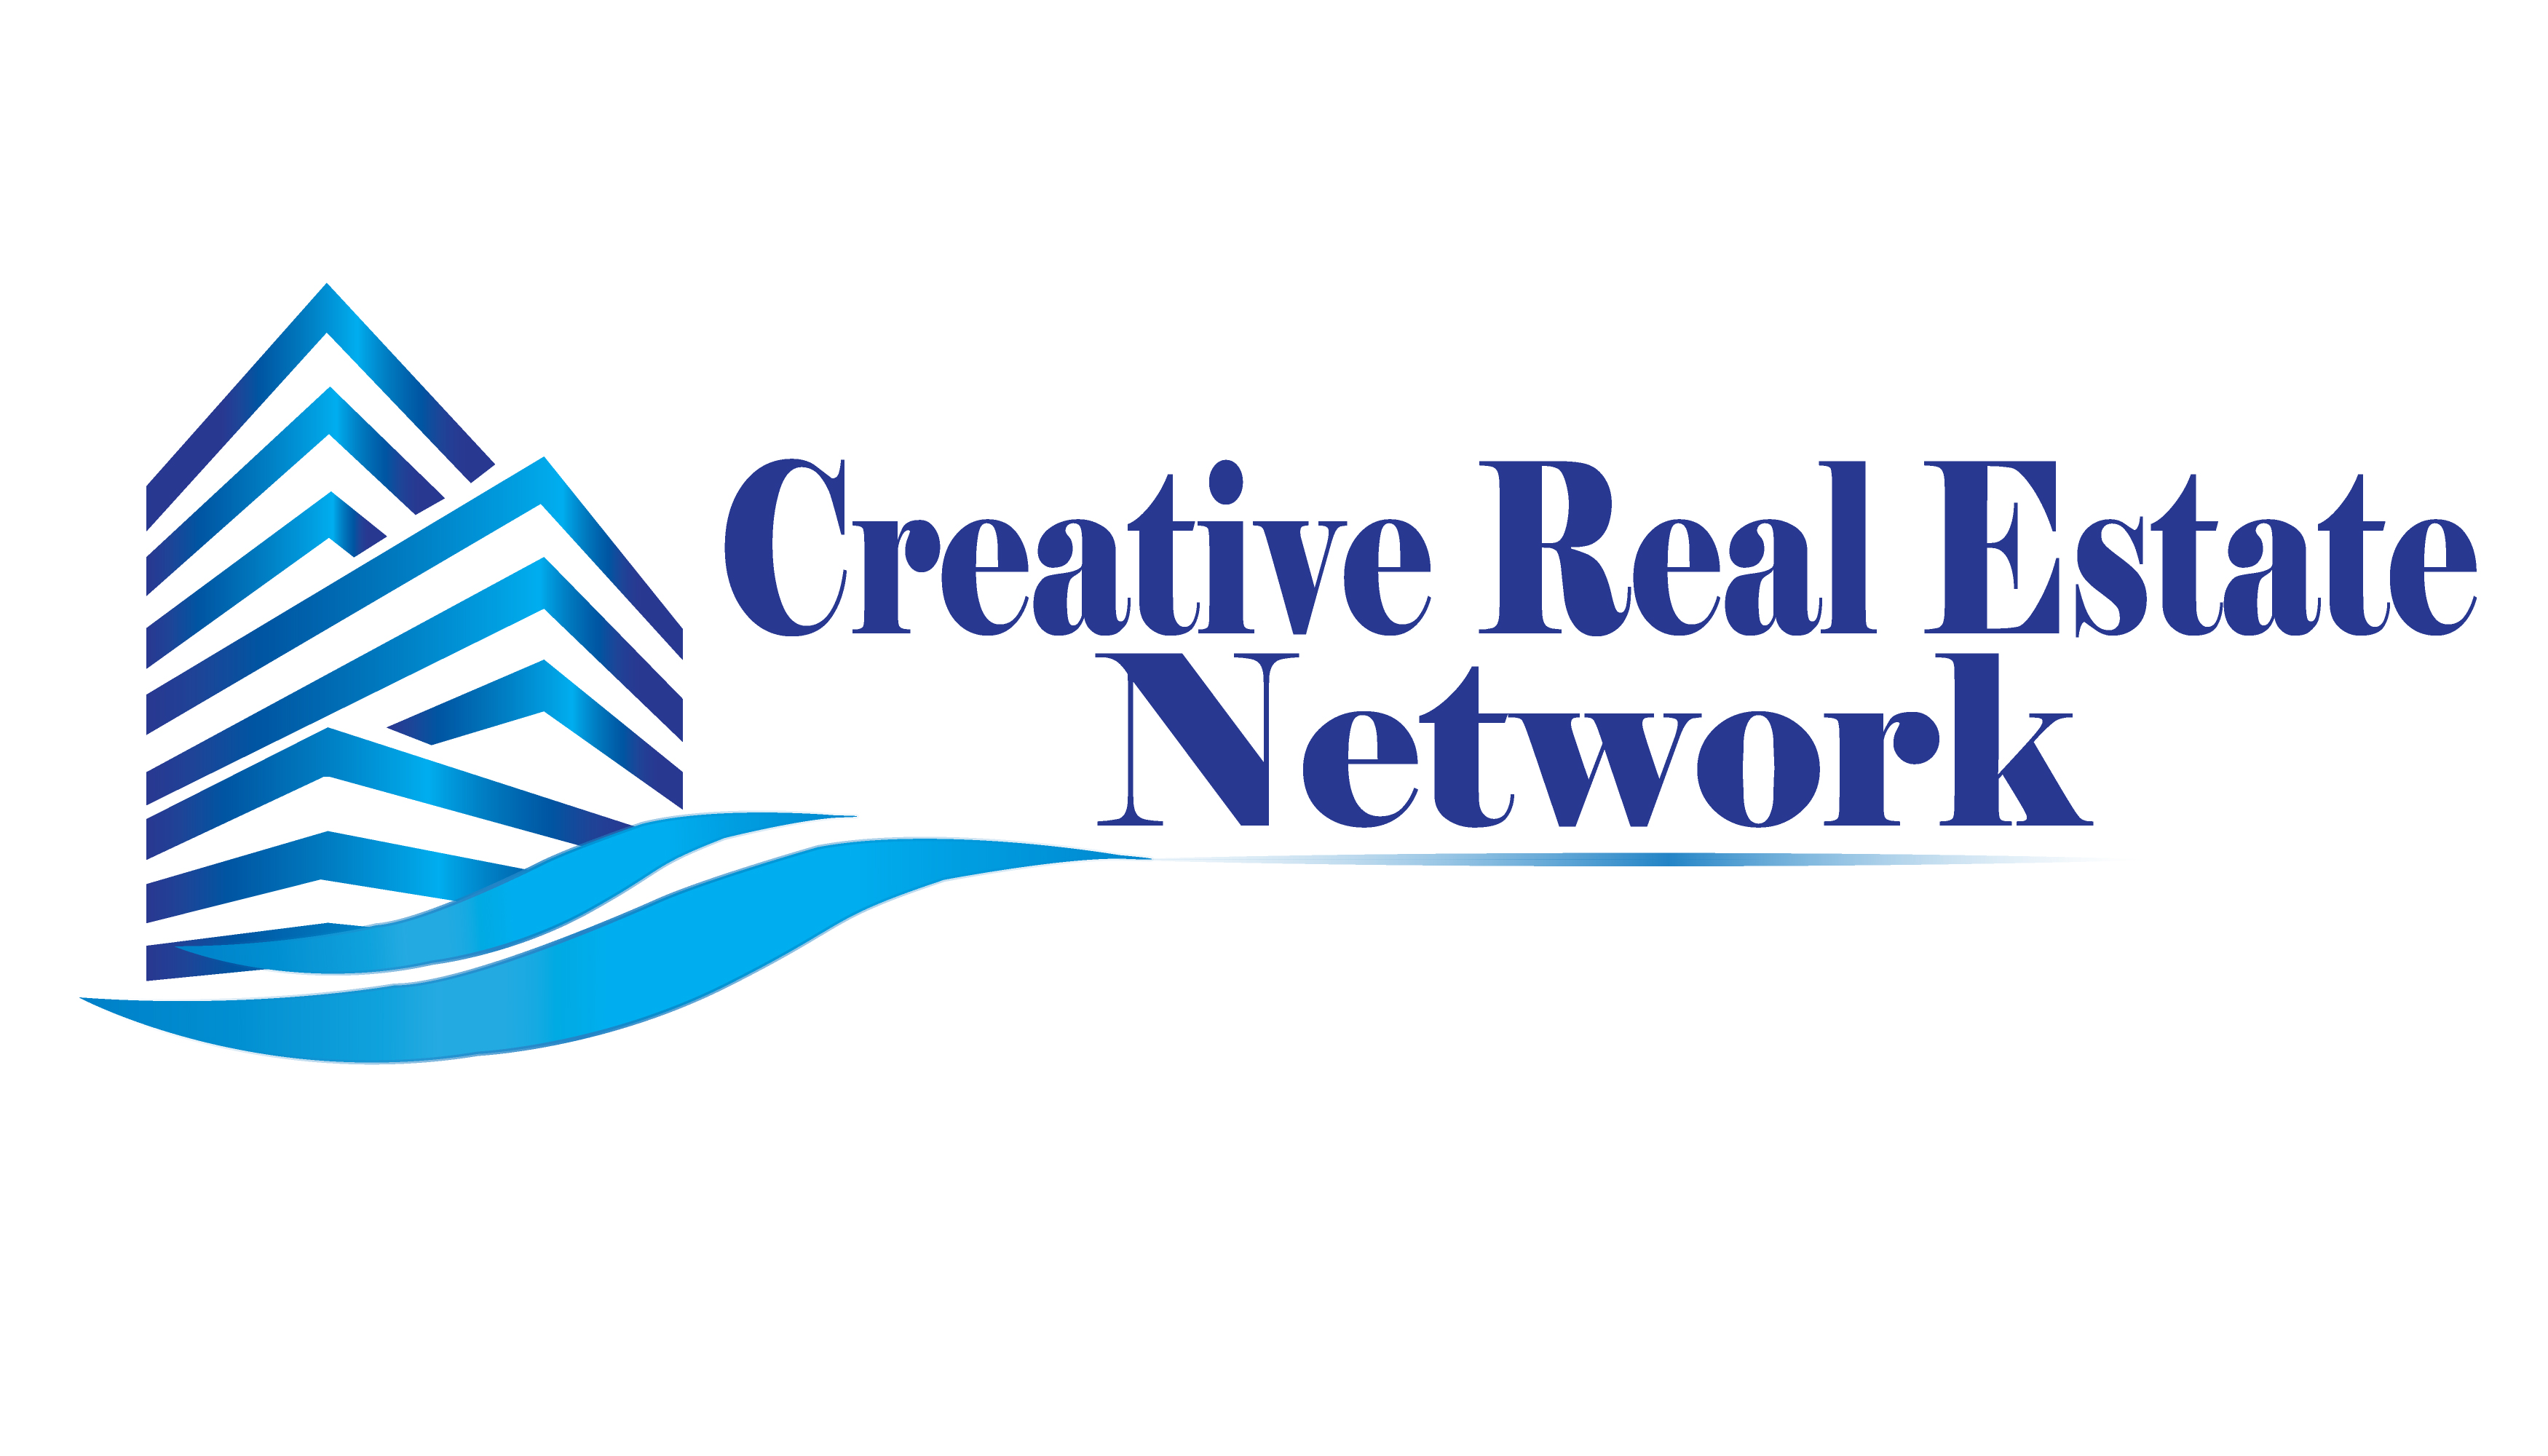 Creative Real Estate Network